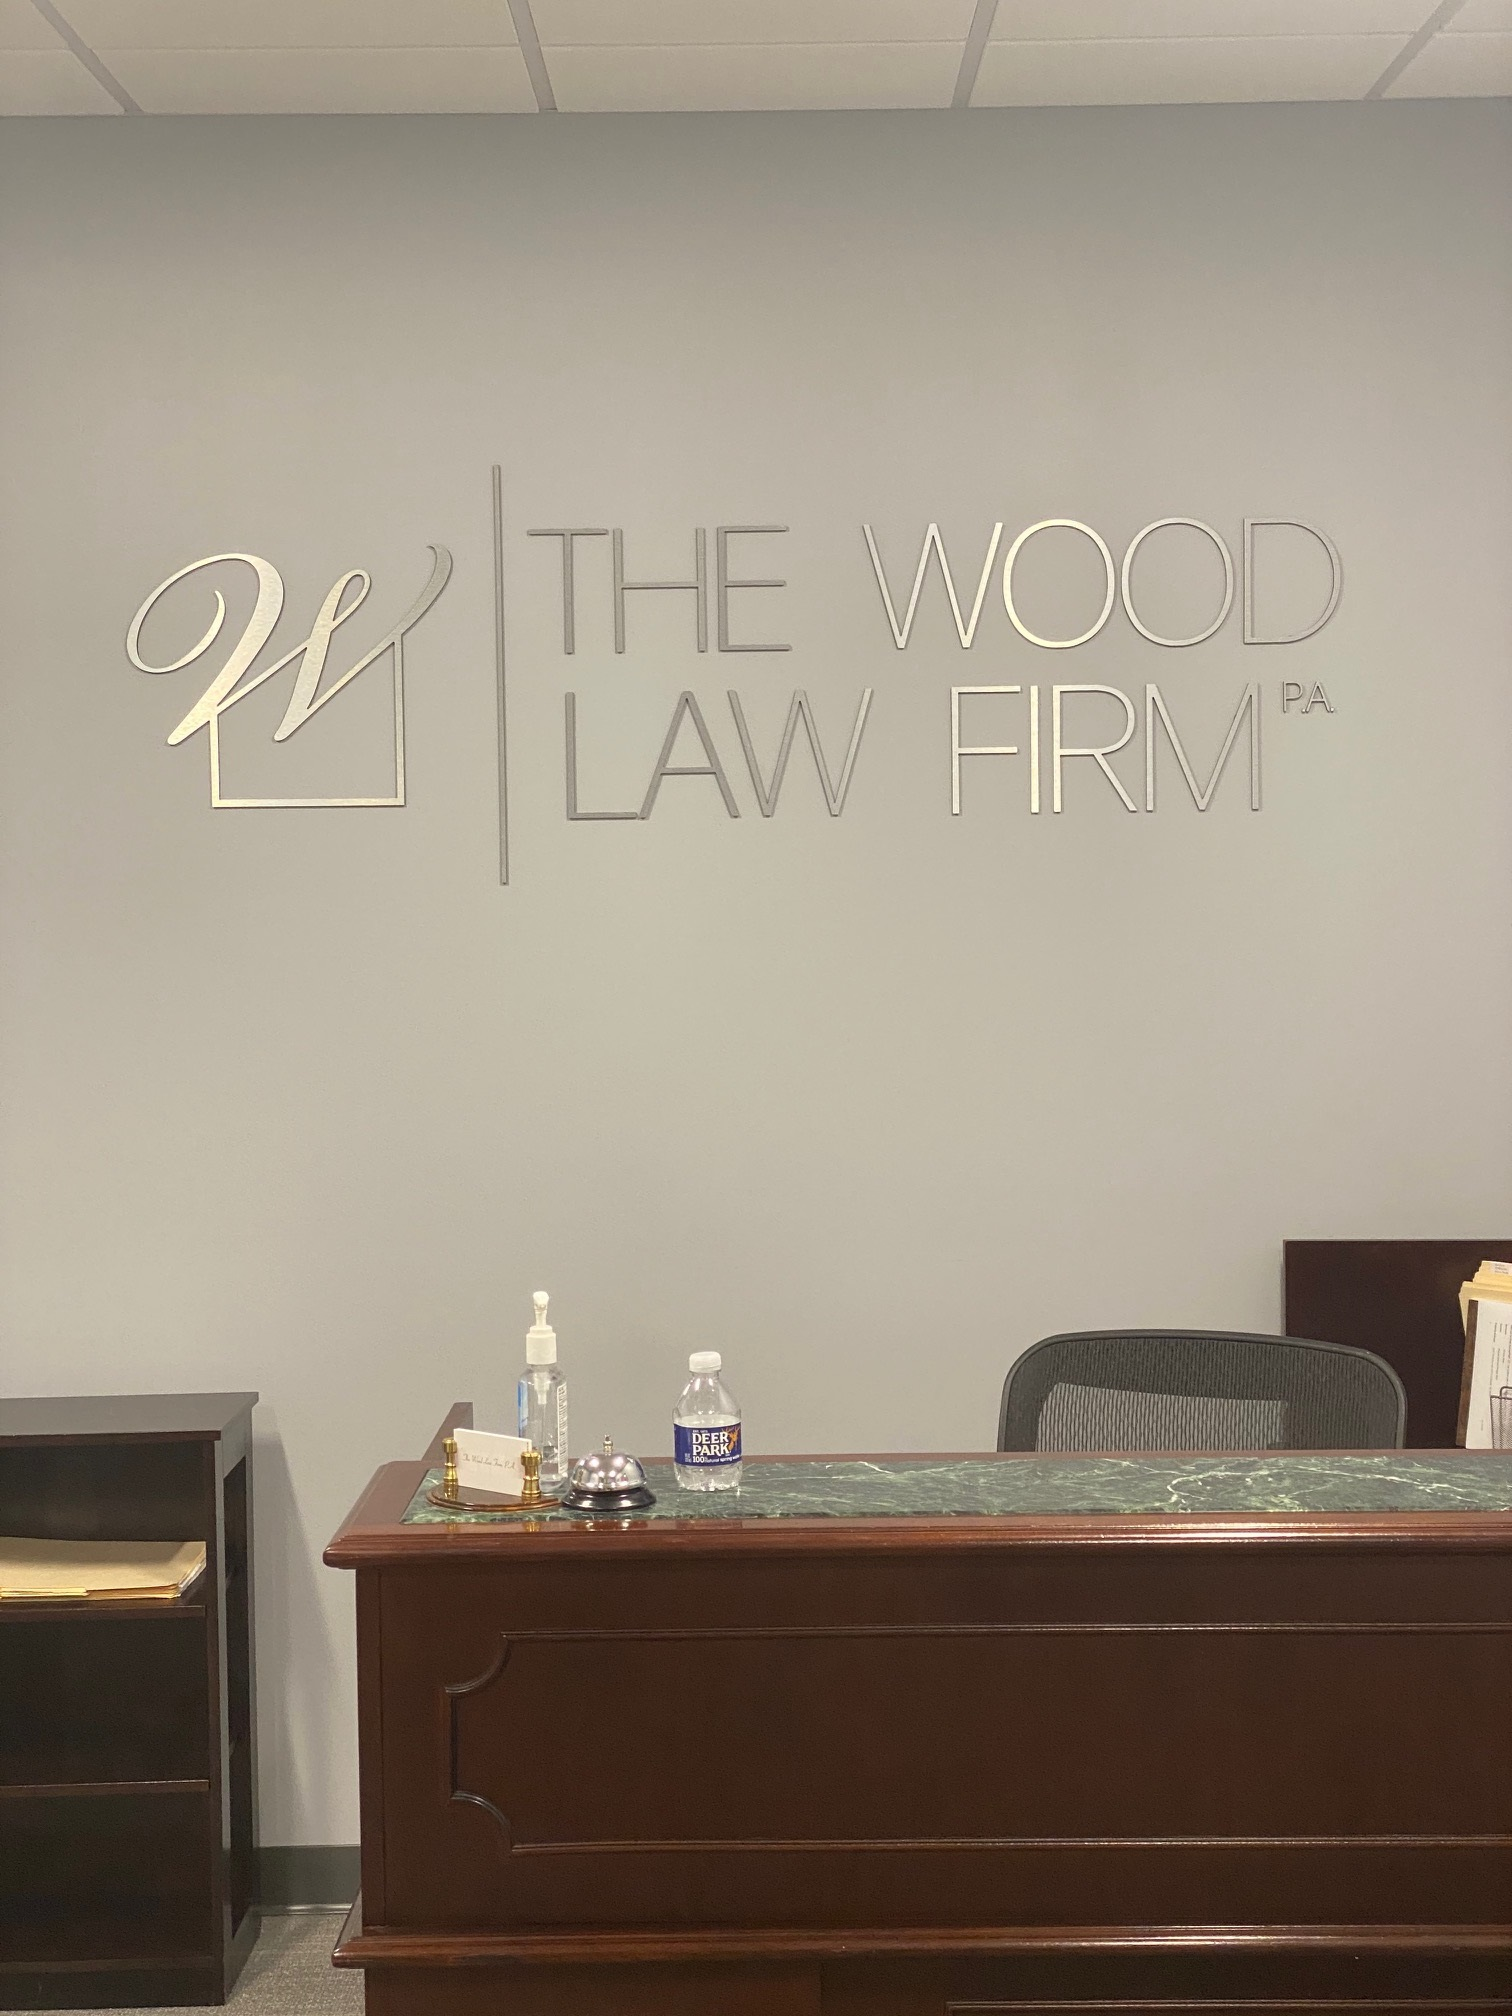 The Wood Law Firm - Interior Sign